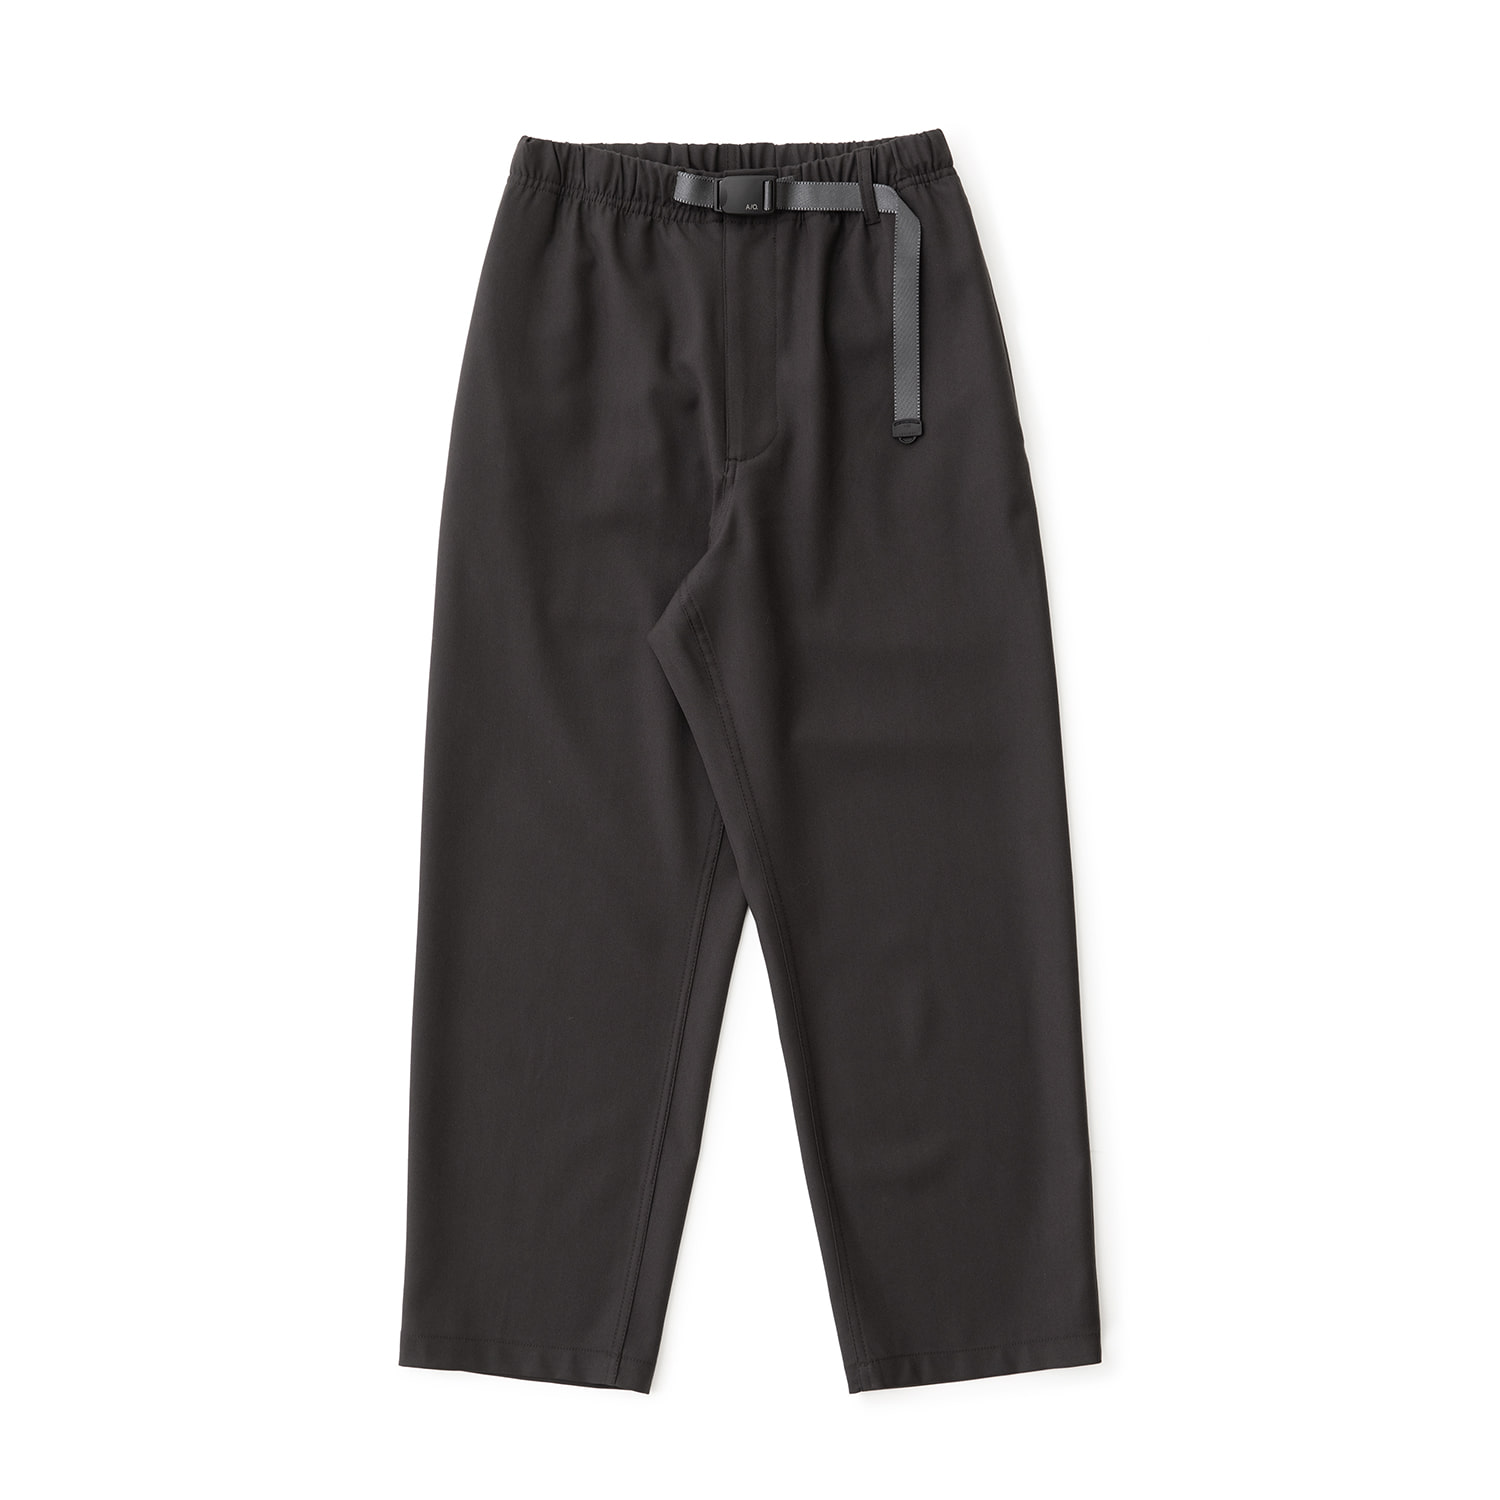 Current Stroller Pants (Brown Charcoal)